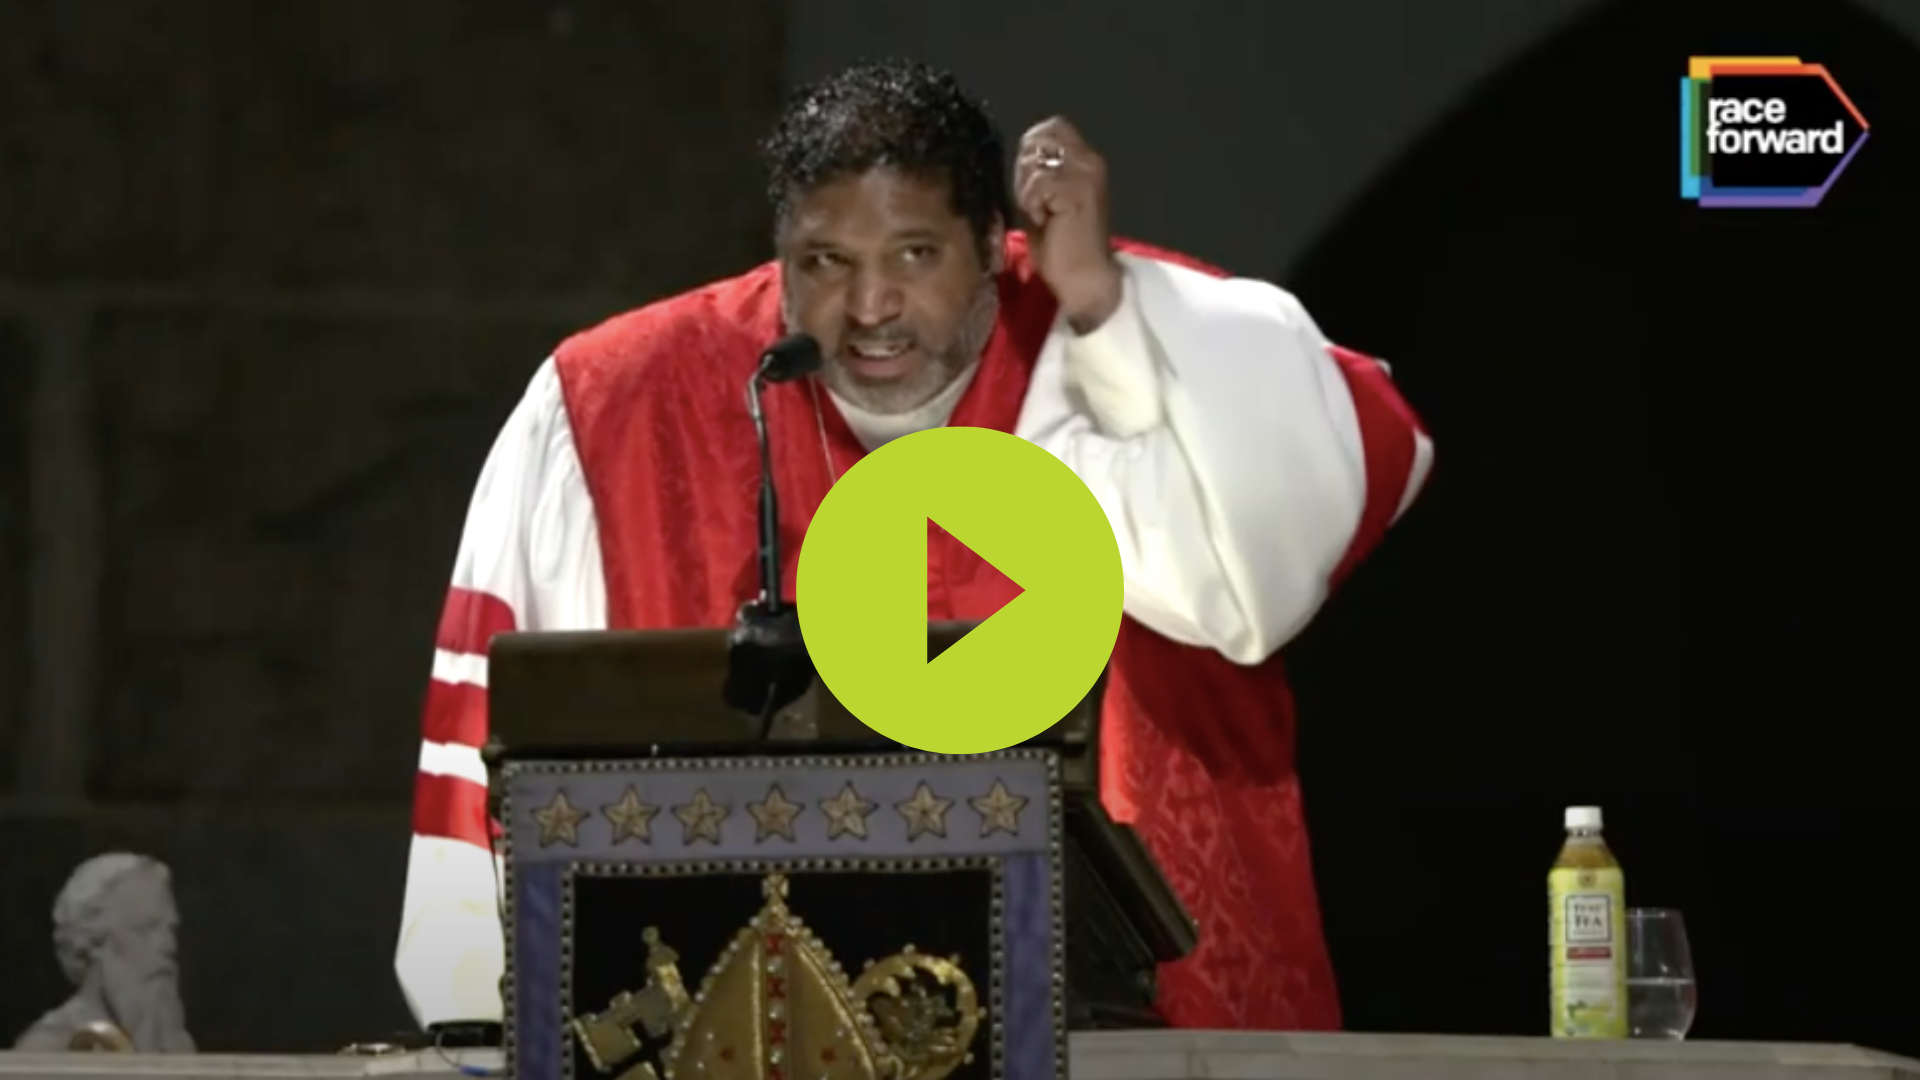 """Image of Rev Barber in robes speaking passionately to an audience, with a lime green """"play"""" button in the center of the image. Click to watch the Rev. Dr. Barber announcement video!"""